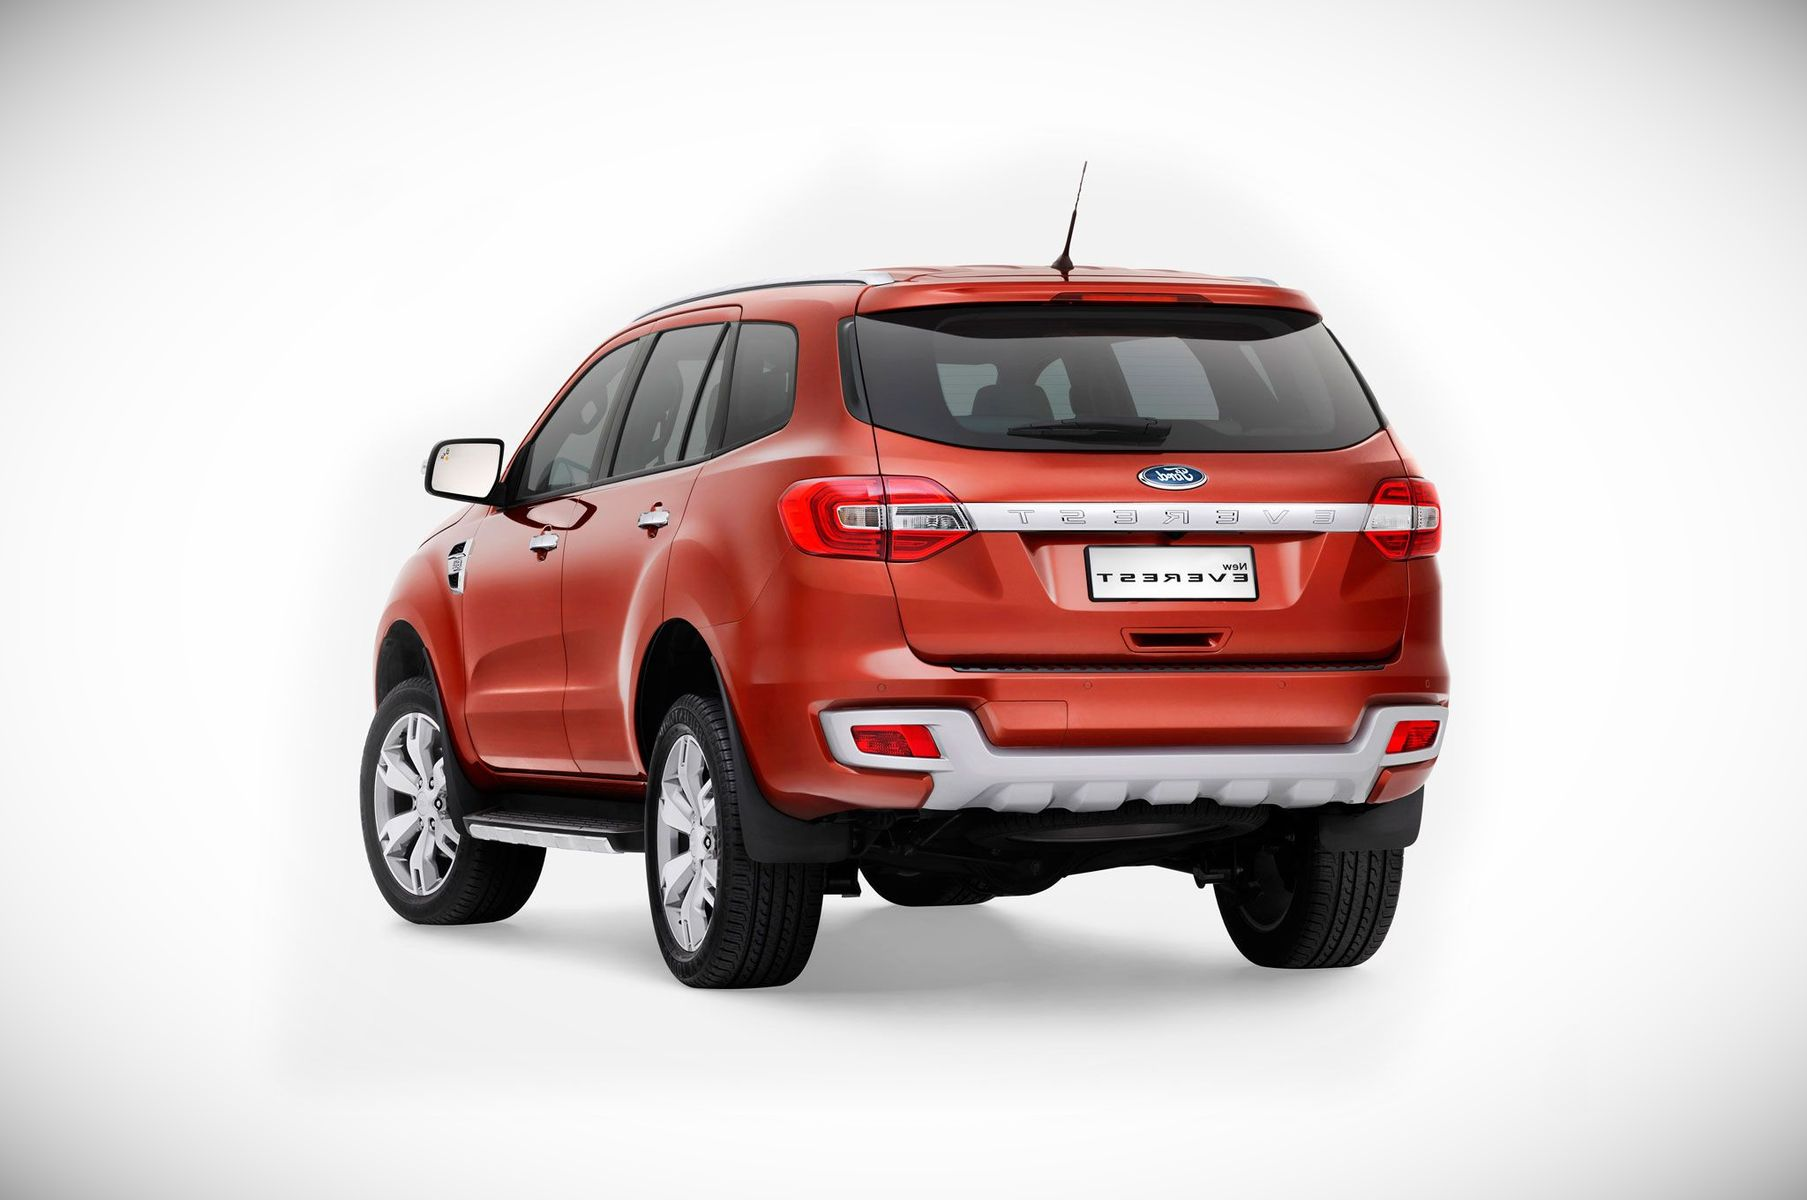 2019 Ford Everest Redesign and Changes